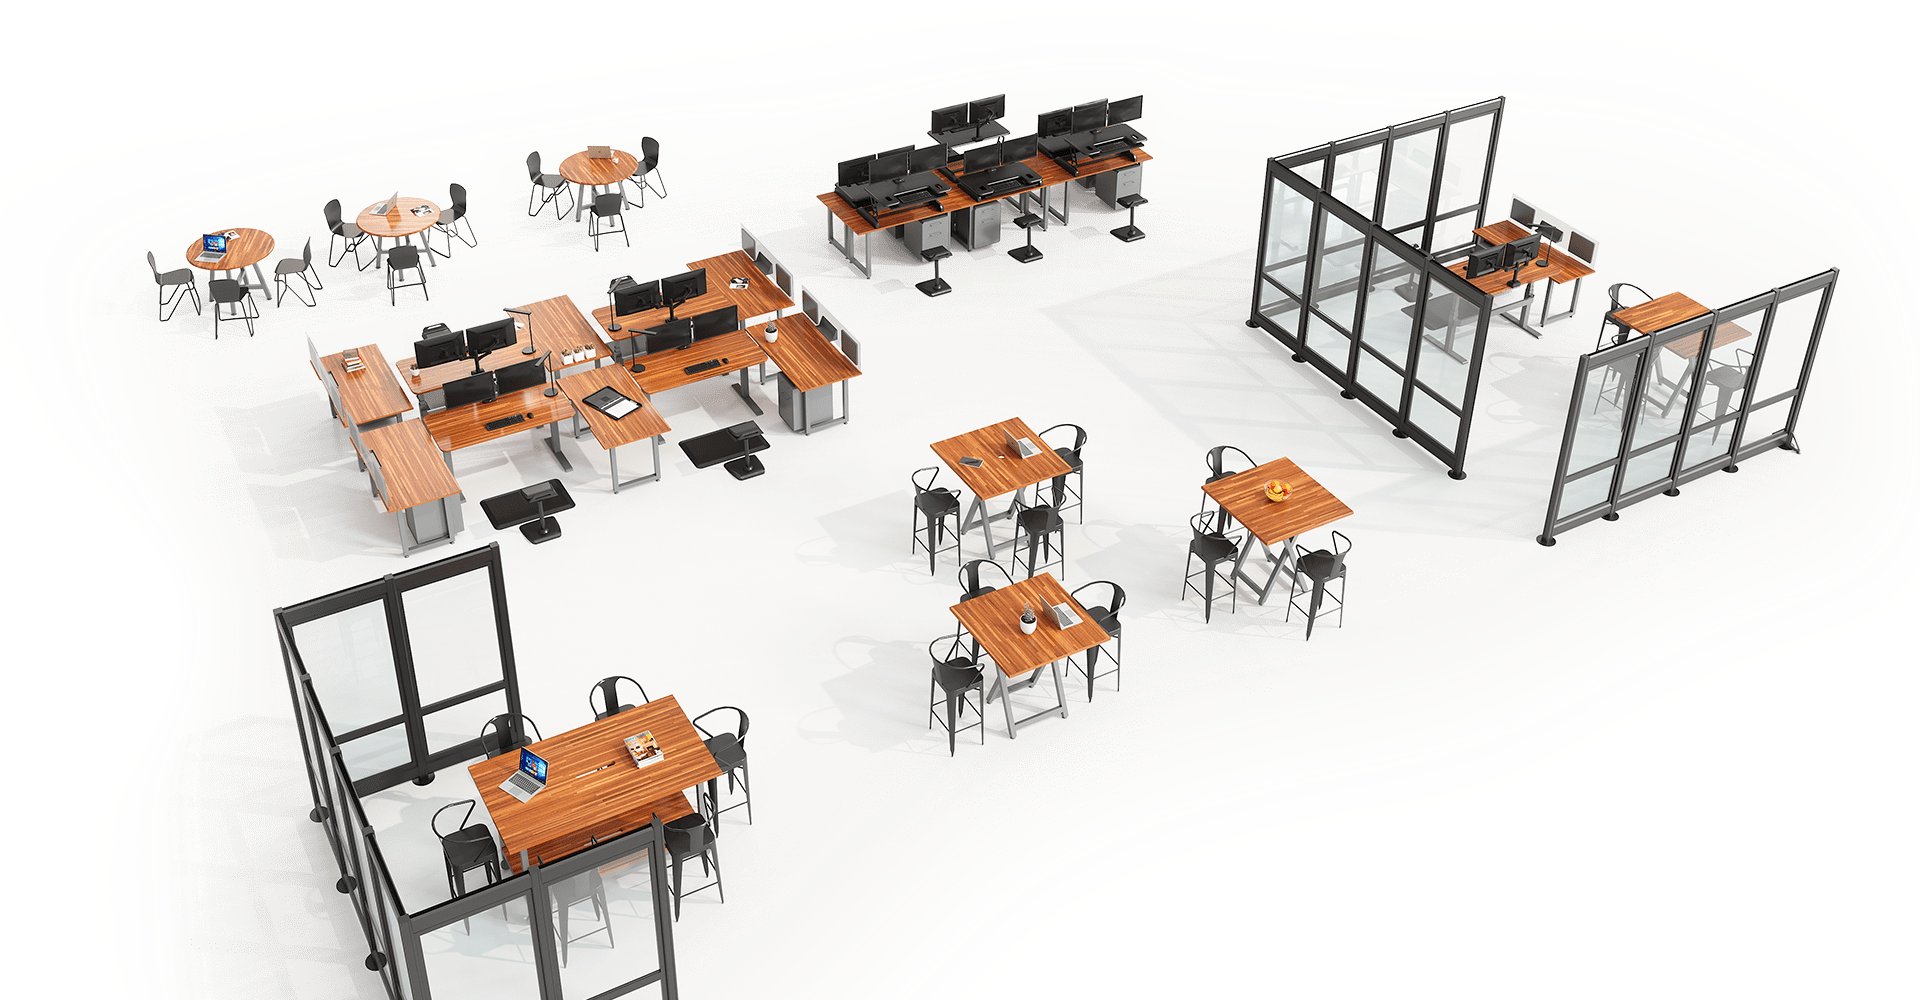 a rendering of an open office layout with many spaces, including a private office, benched desks, breakroom and meeting spaces. the spaces are delineated with quickflex walls on a white background.